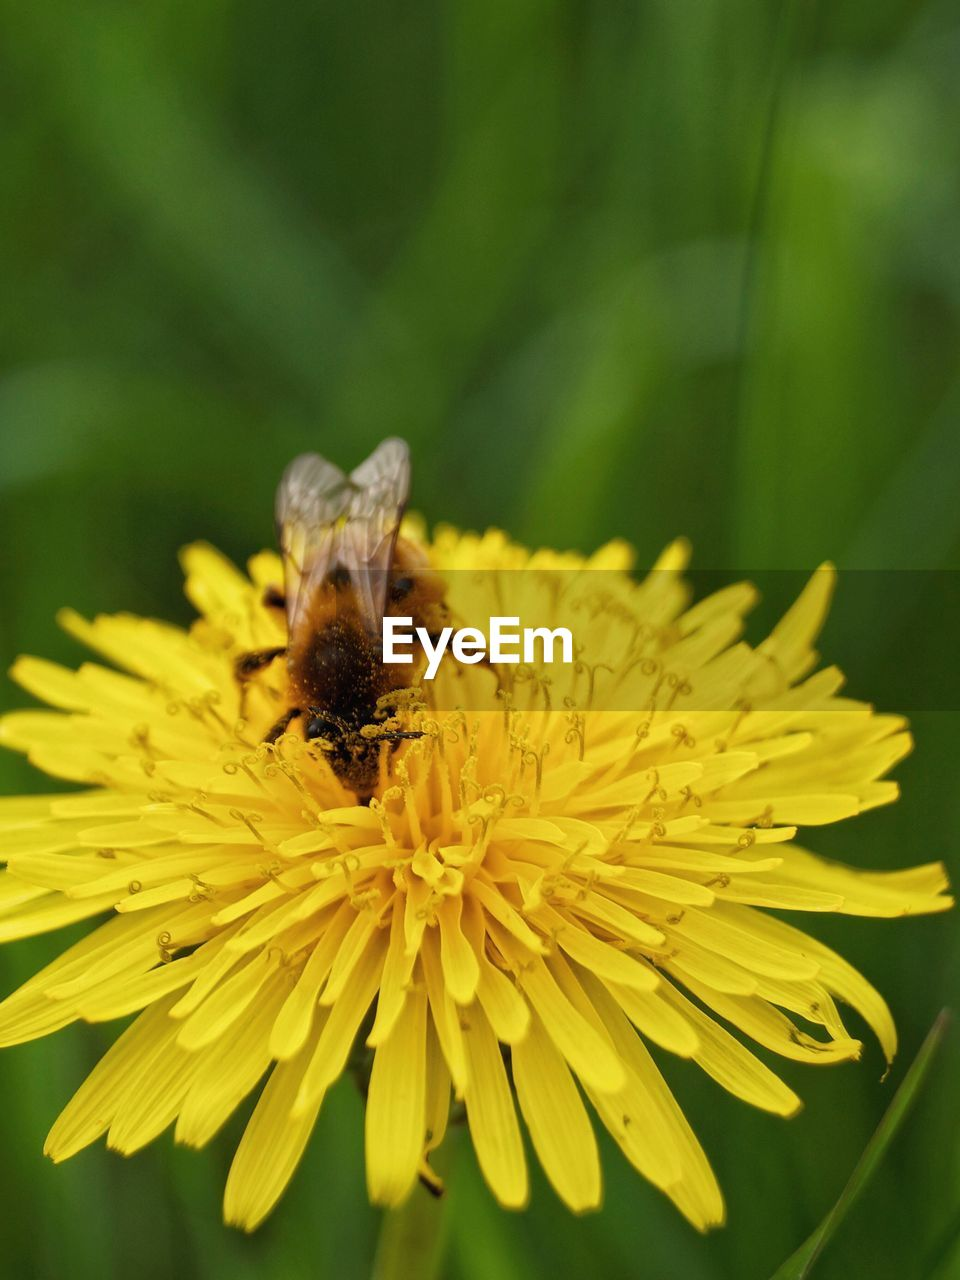 flower, flowering plant, animal, insect, animal themes, fragility, animal wildlife, petal, animals in the wild, beauty in nature, invertebrate, vulnerability, freshness, one animal, bee, plant, flower head, yellow, close-up, growth, pollination, pollen, no people, bumblebee